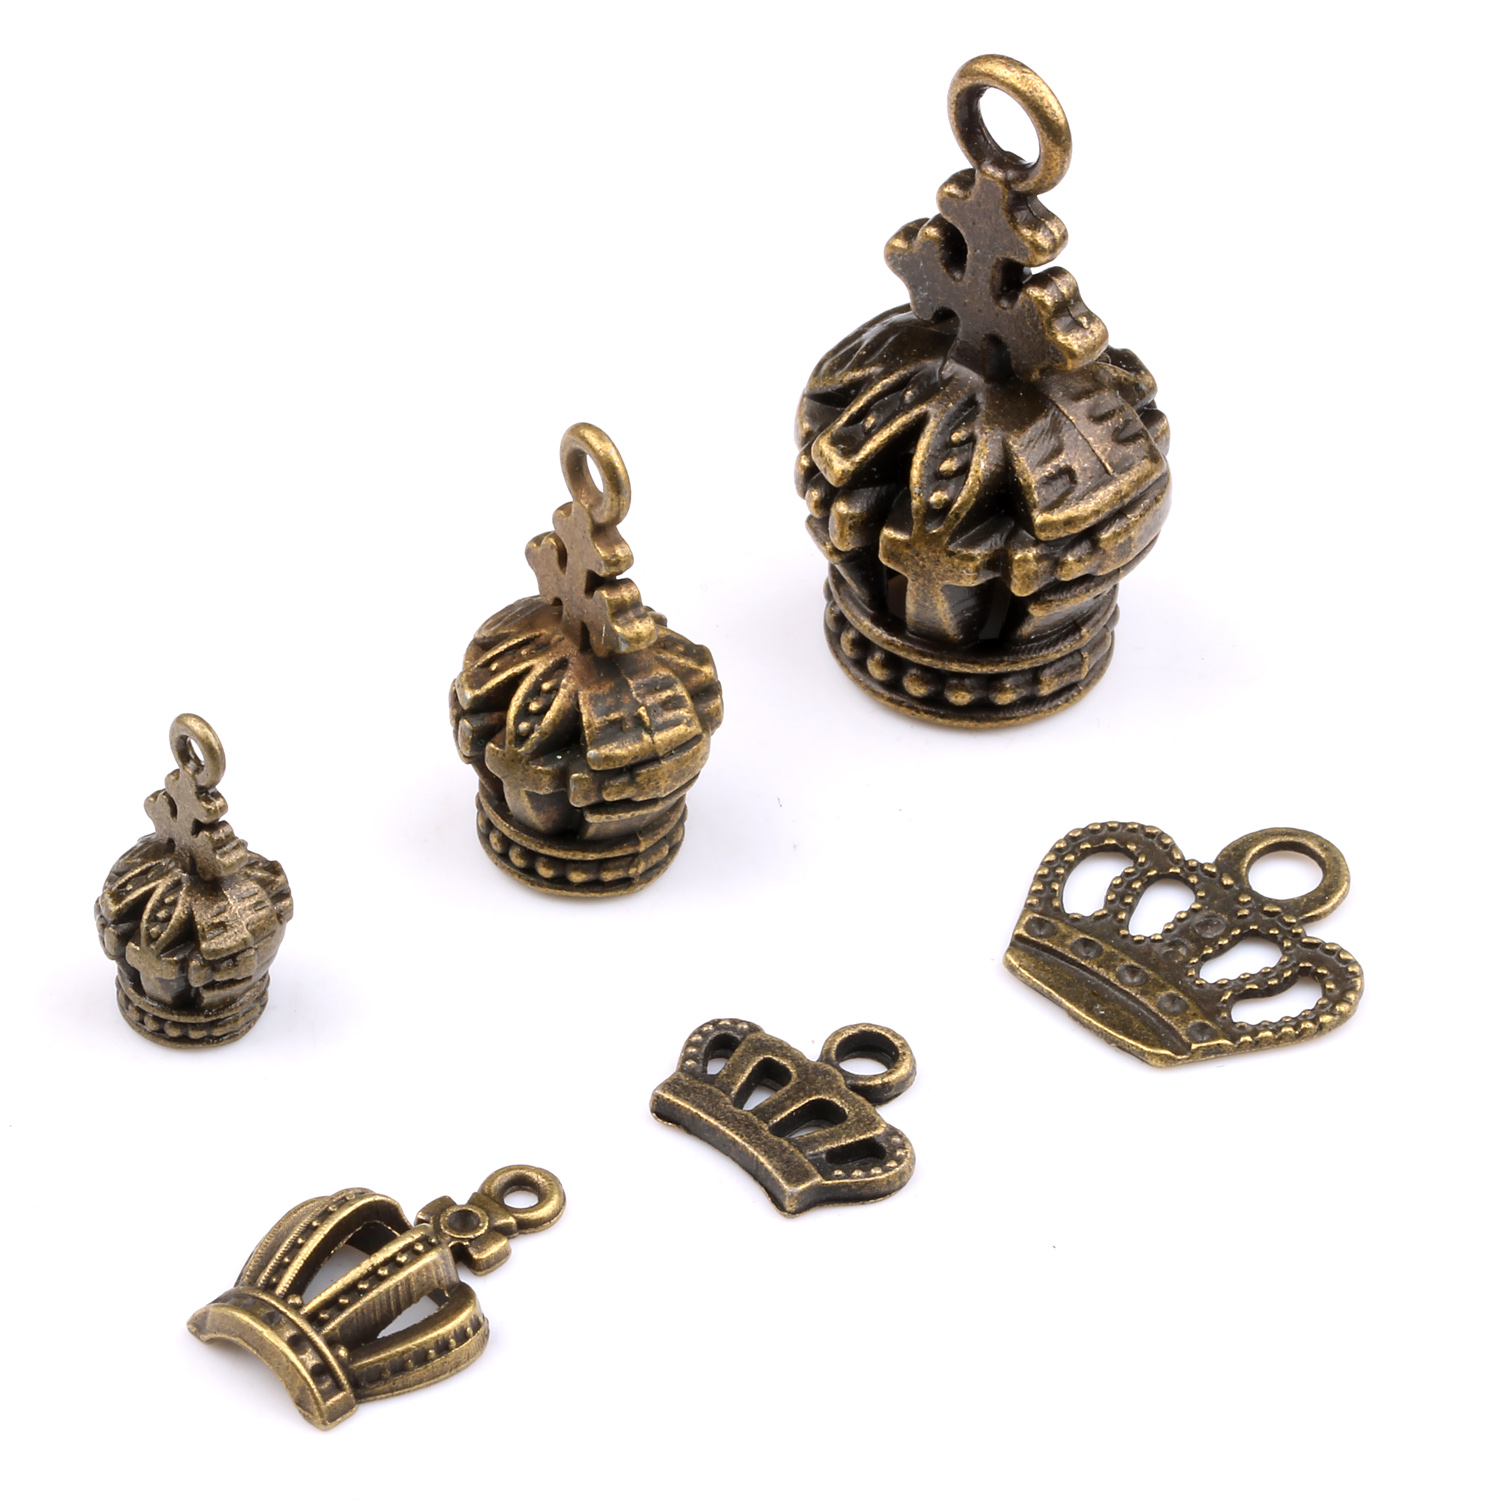 Ye ya diy handmade jewelry materials small pendant ornaments antique bronze crown alloy beaded accessories